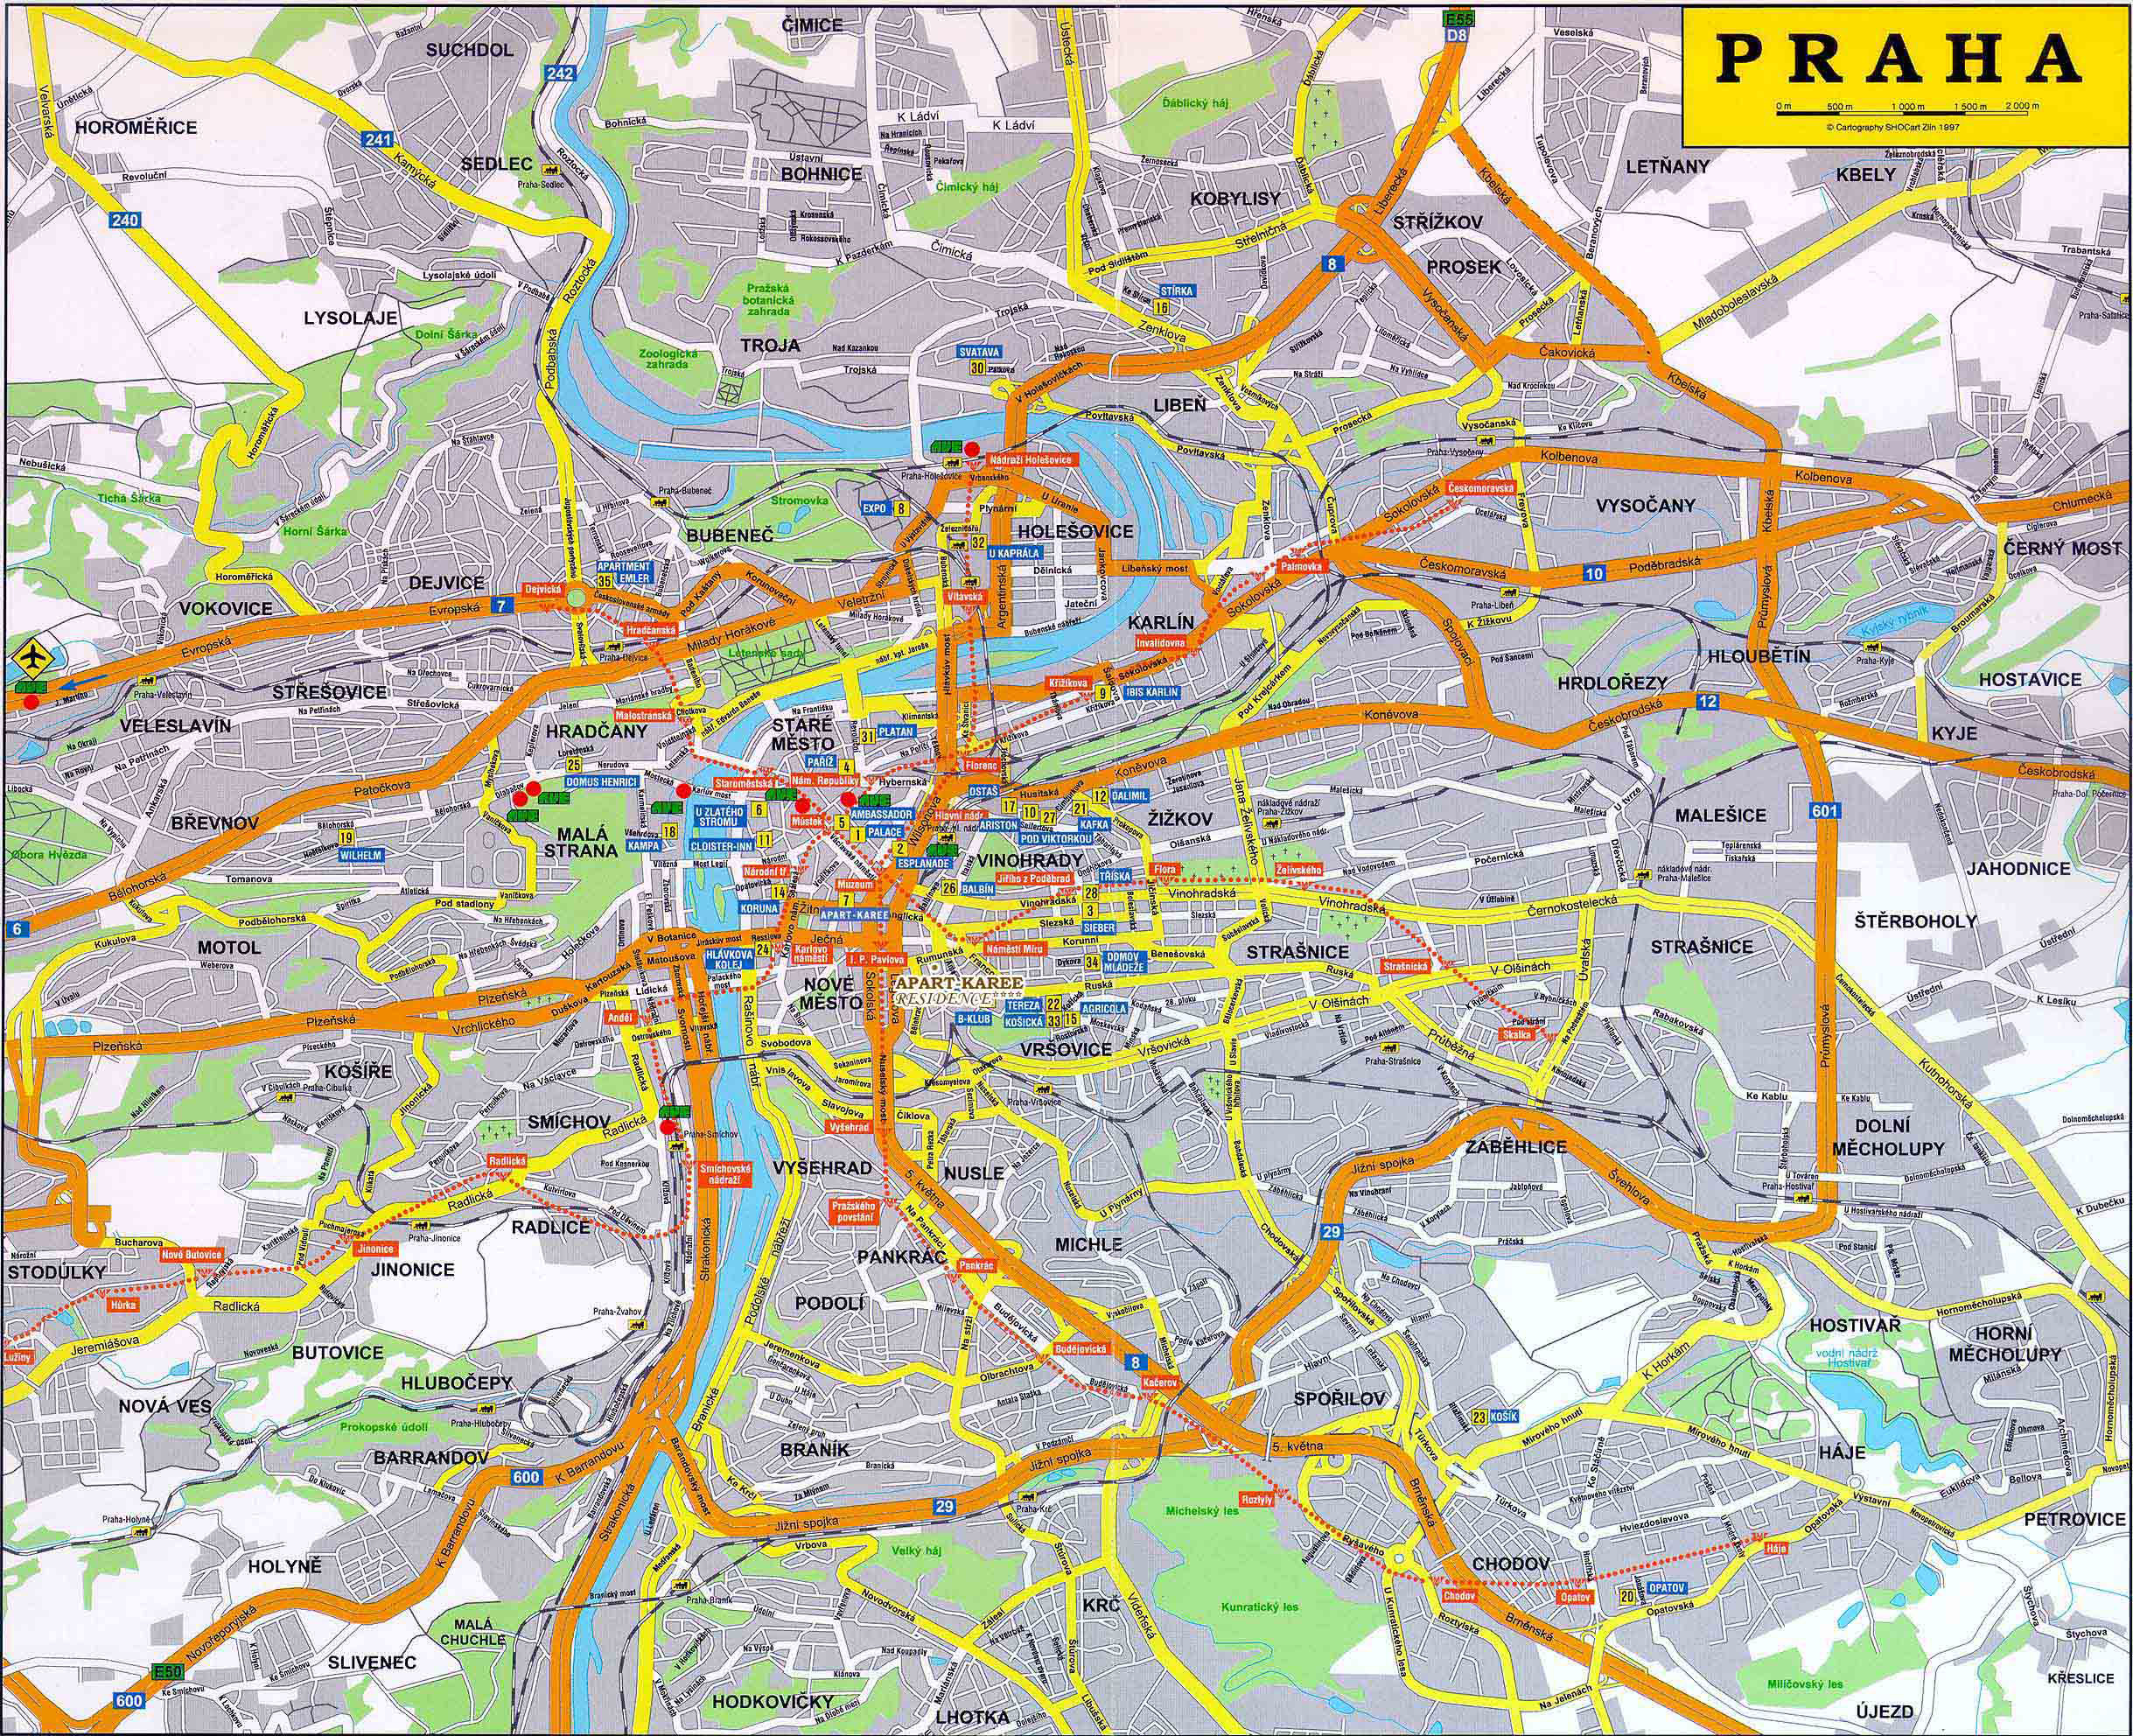 Detailed road map of praha city prague city detailed road map